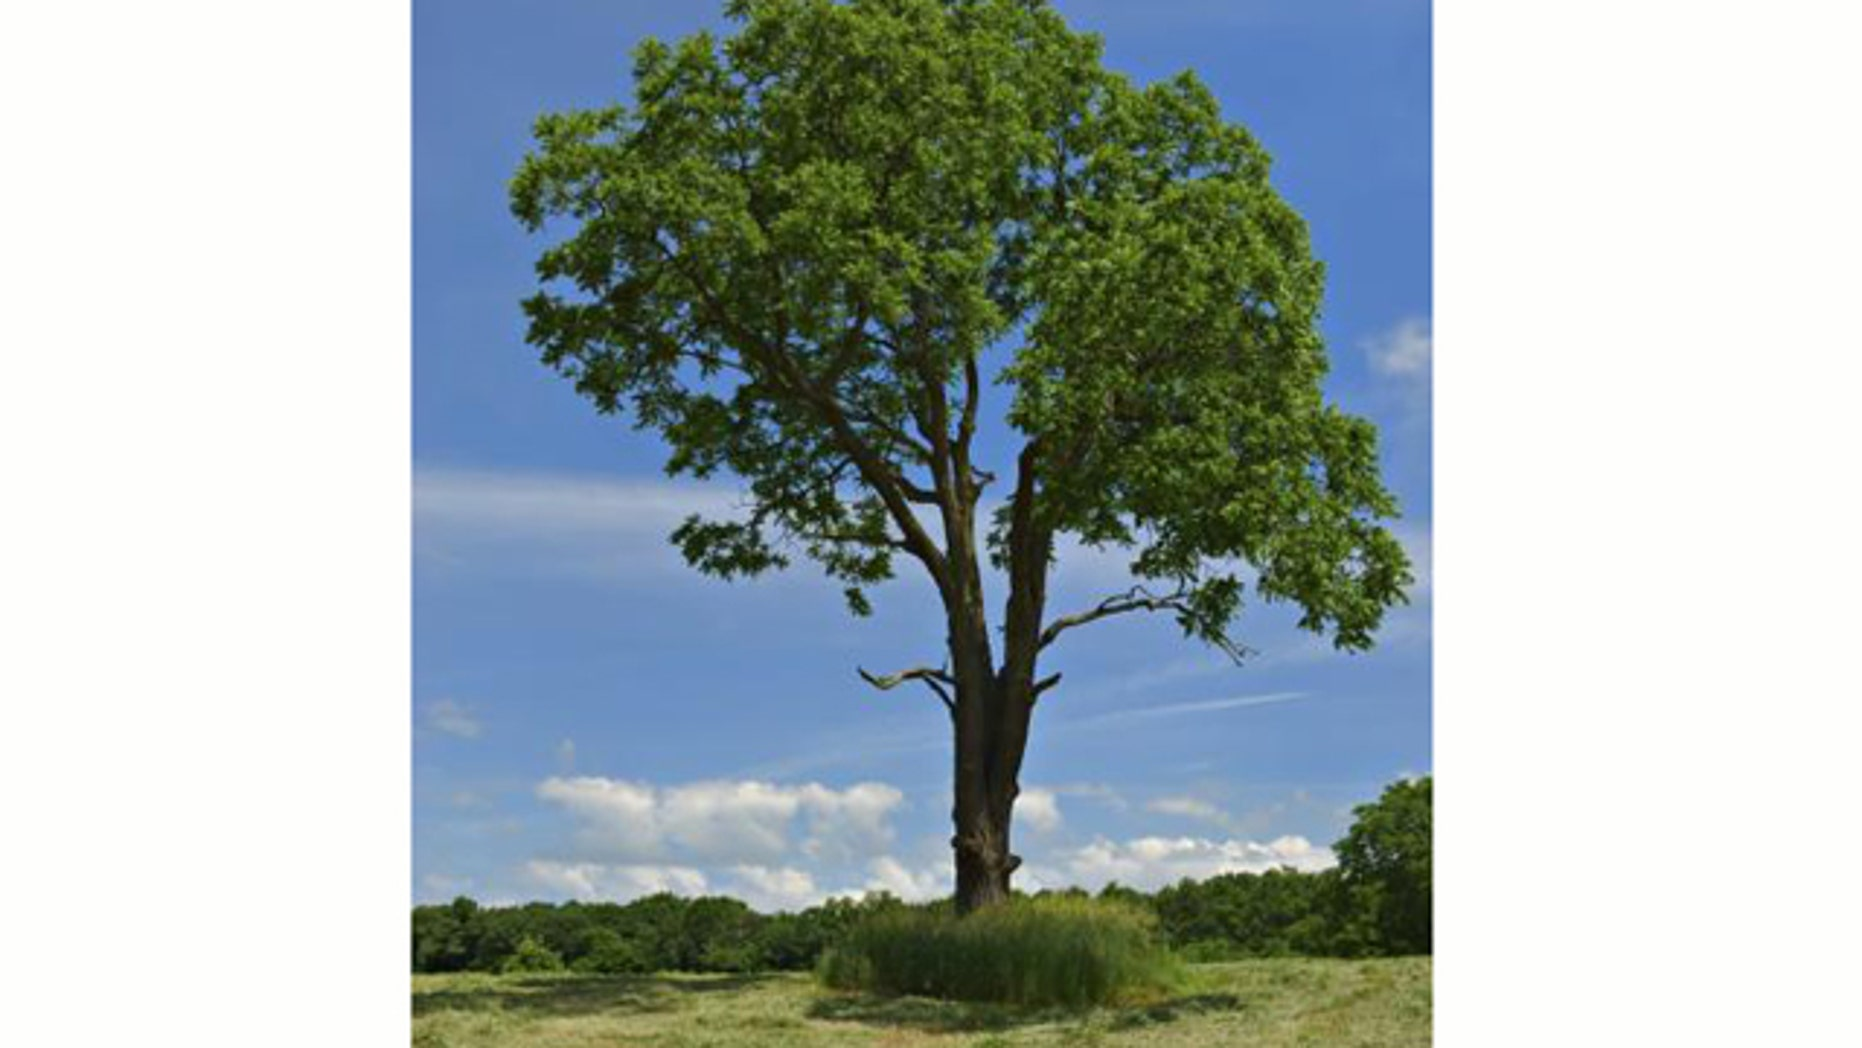 Leaves of the walnut tree contain progesterone, the female sex hormone, discovered for the first time in a plant.